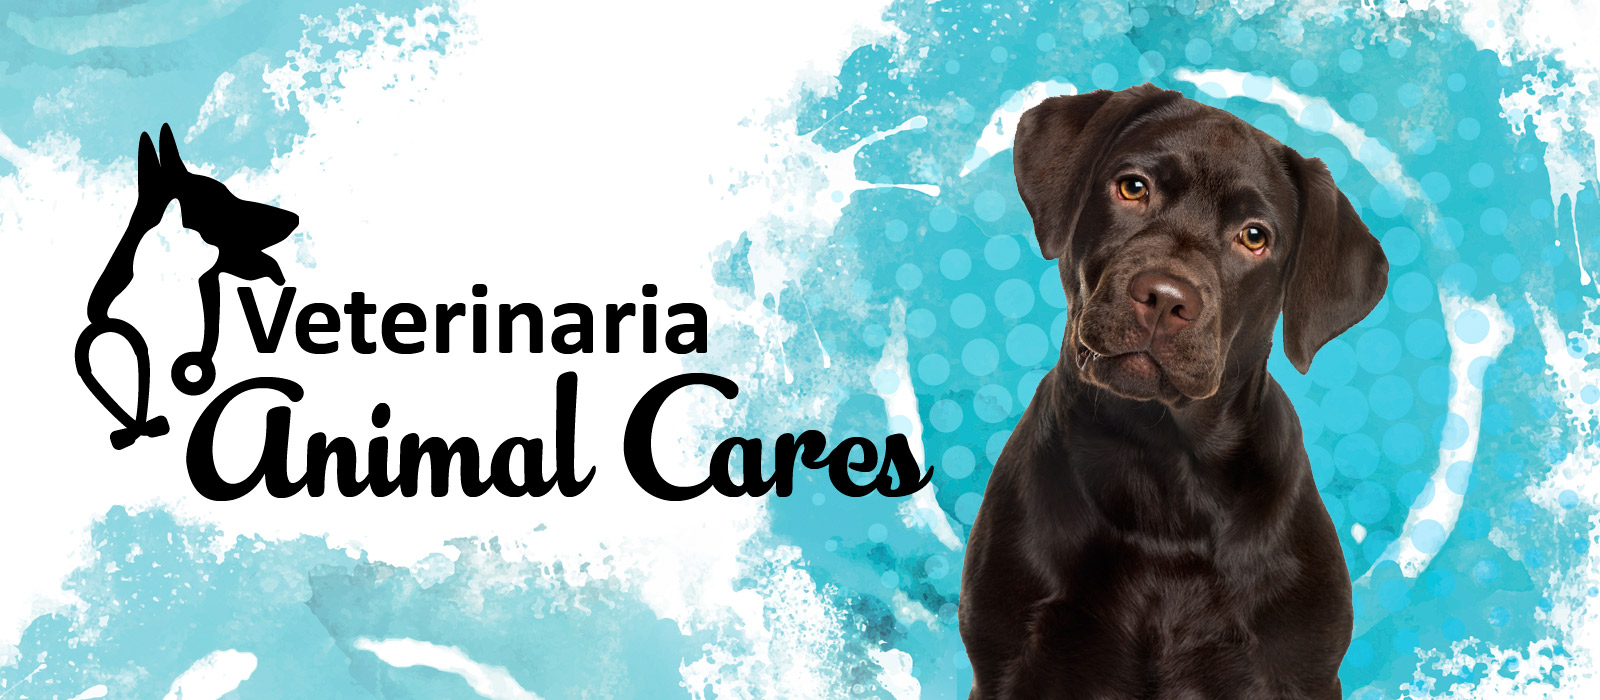 Veterinaria Animal Cares banner